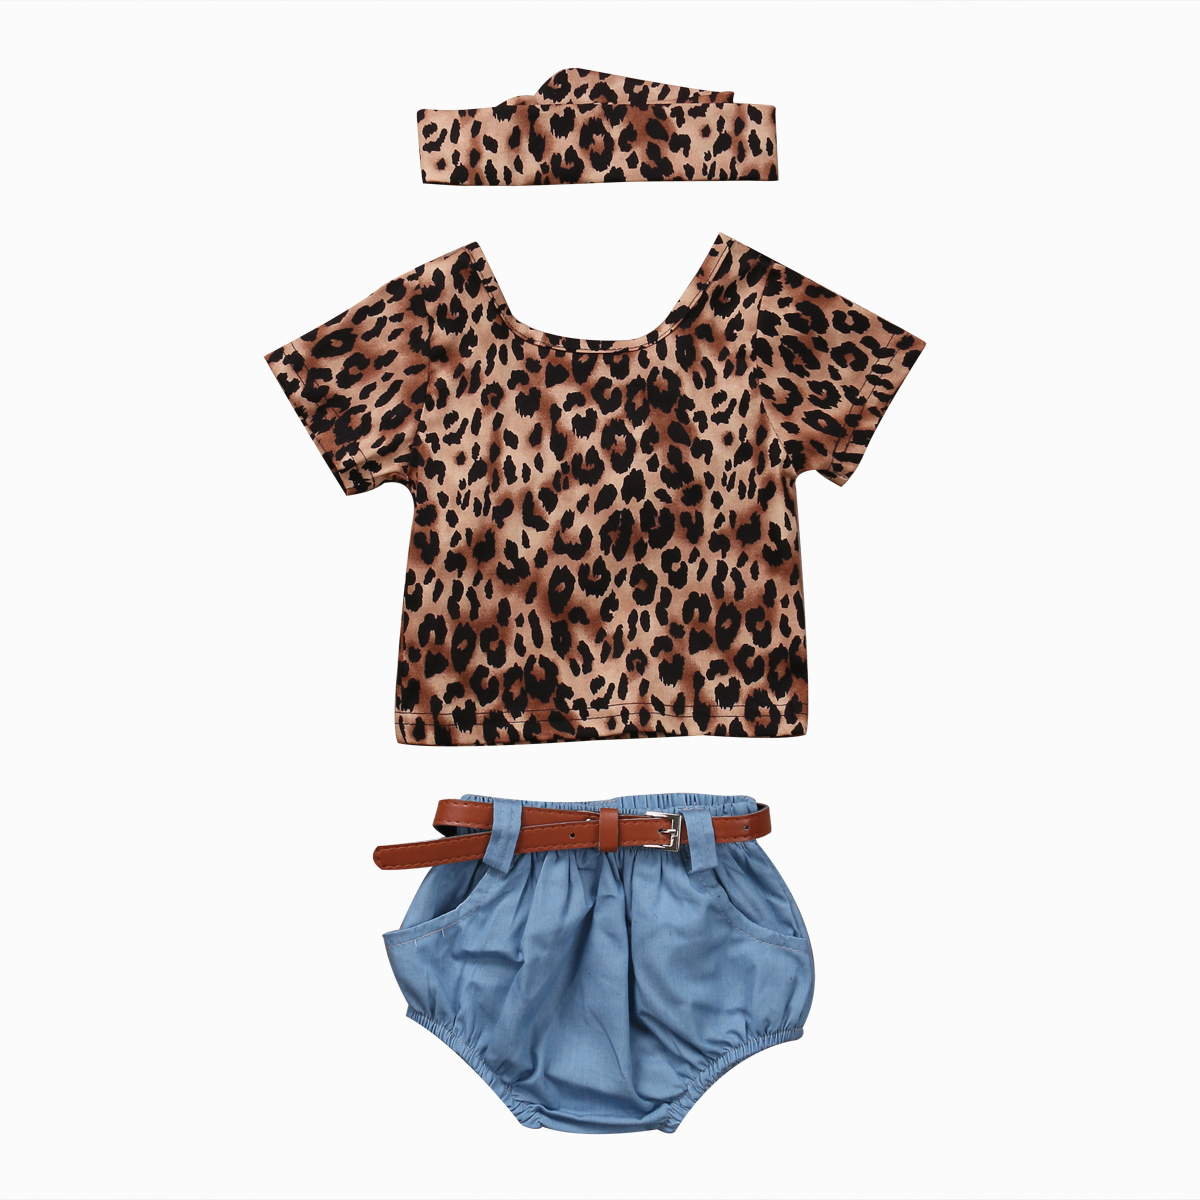 Baby Girl Clothes Set 2017 New Hot Sale Newborn Baby Girls Leopard Short Sleeve Shirt + Denim Pants Kids Clothes Outfits